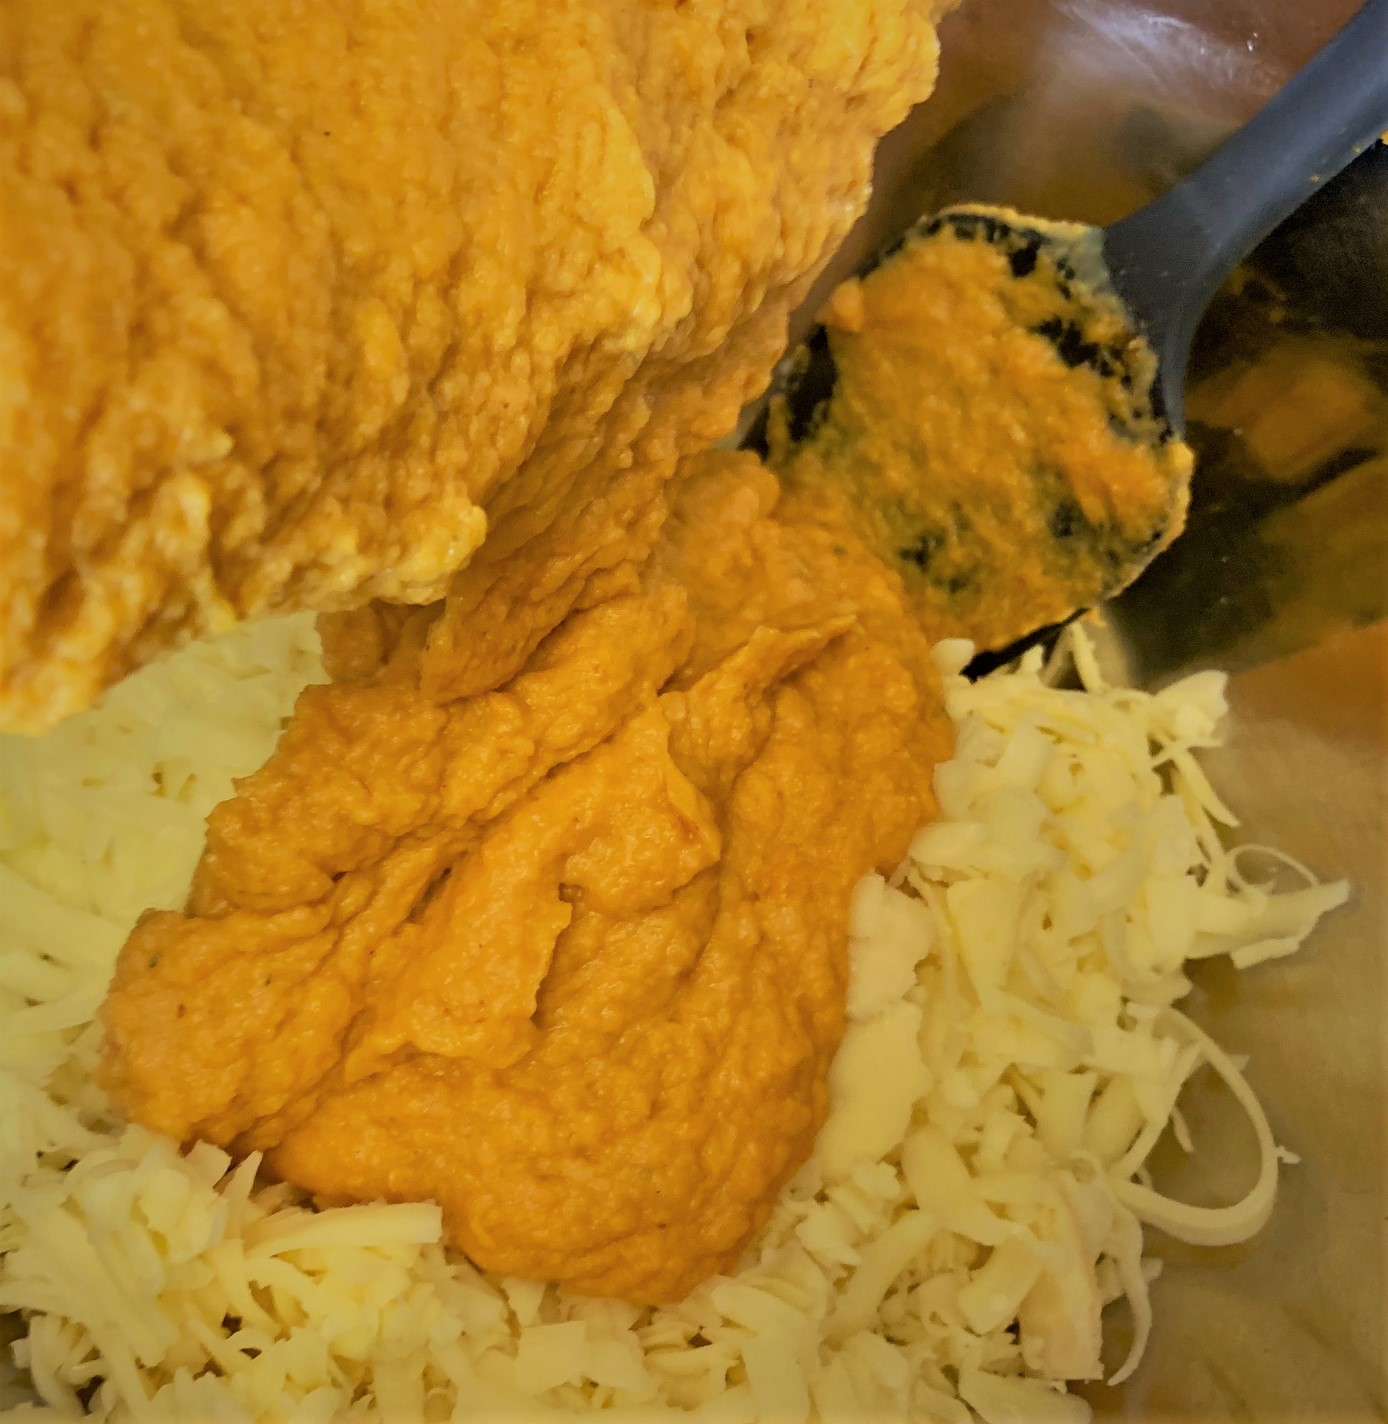 Adding the Pumpkin Bechamel to the Shredded Cheese for our Pumpkin Mac & Cheese